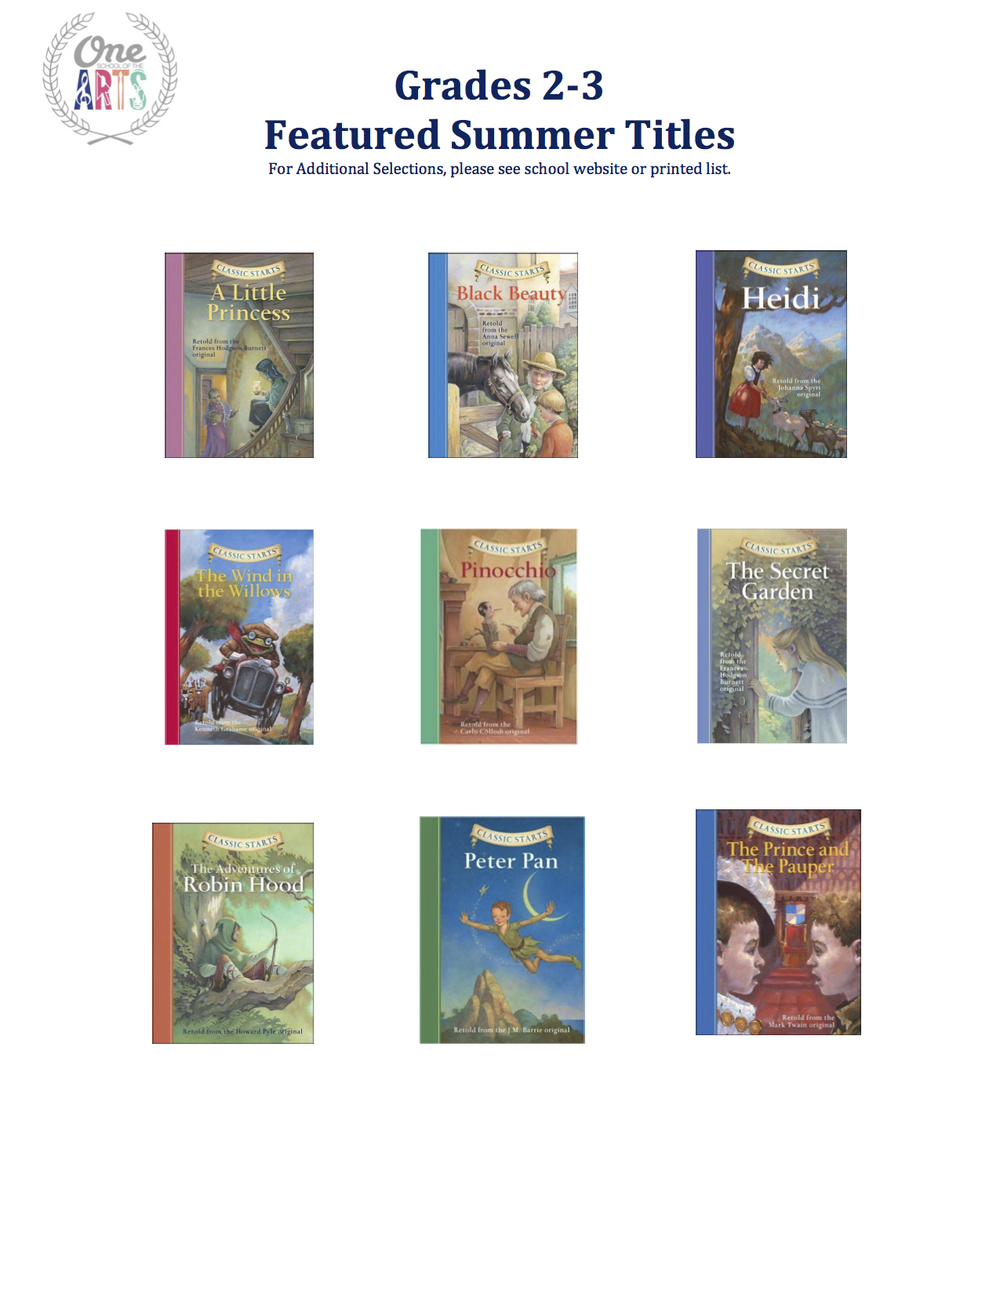 Grades 2 -3 Featured Summer Titles 2015.jpeg